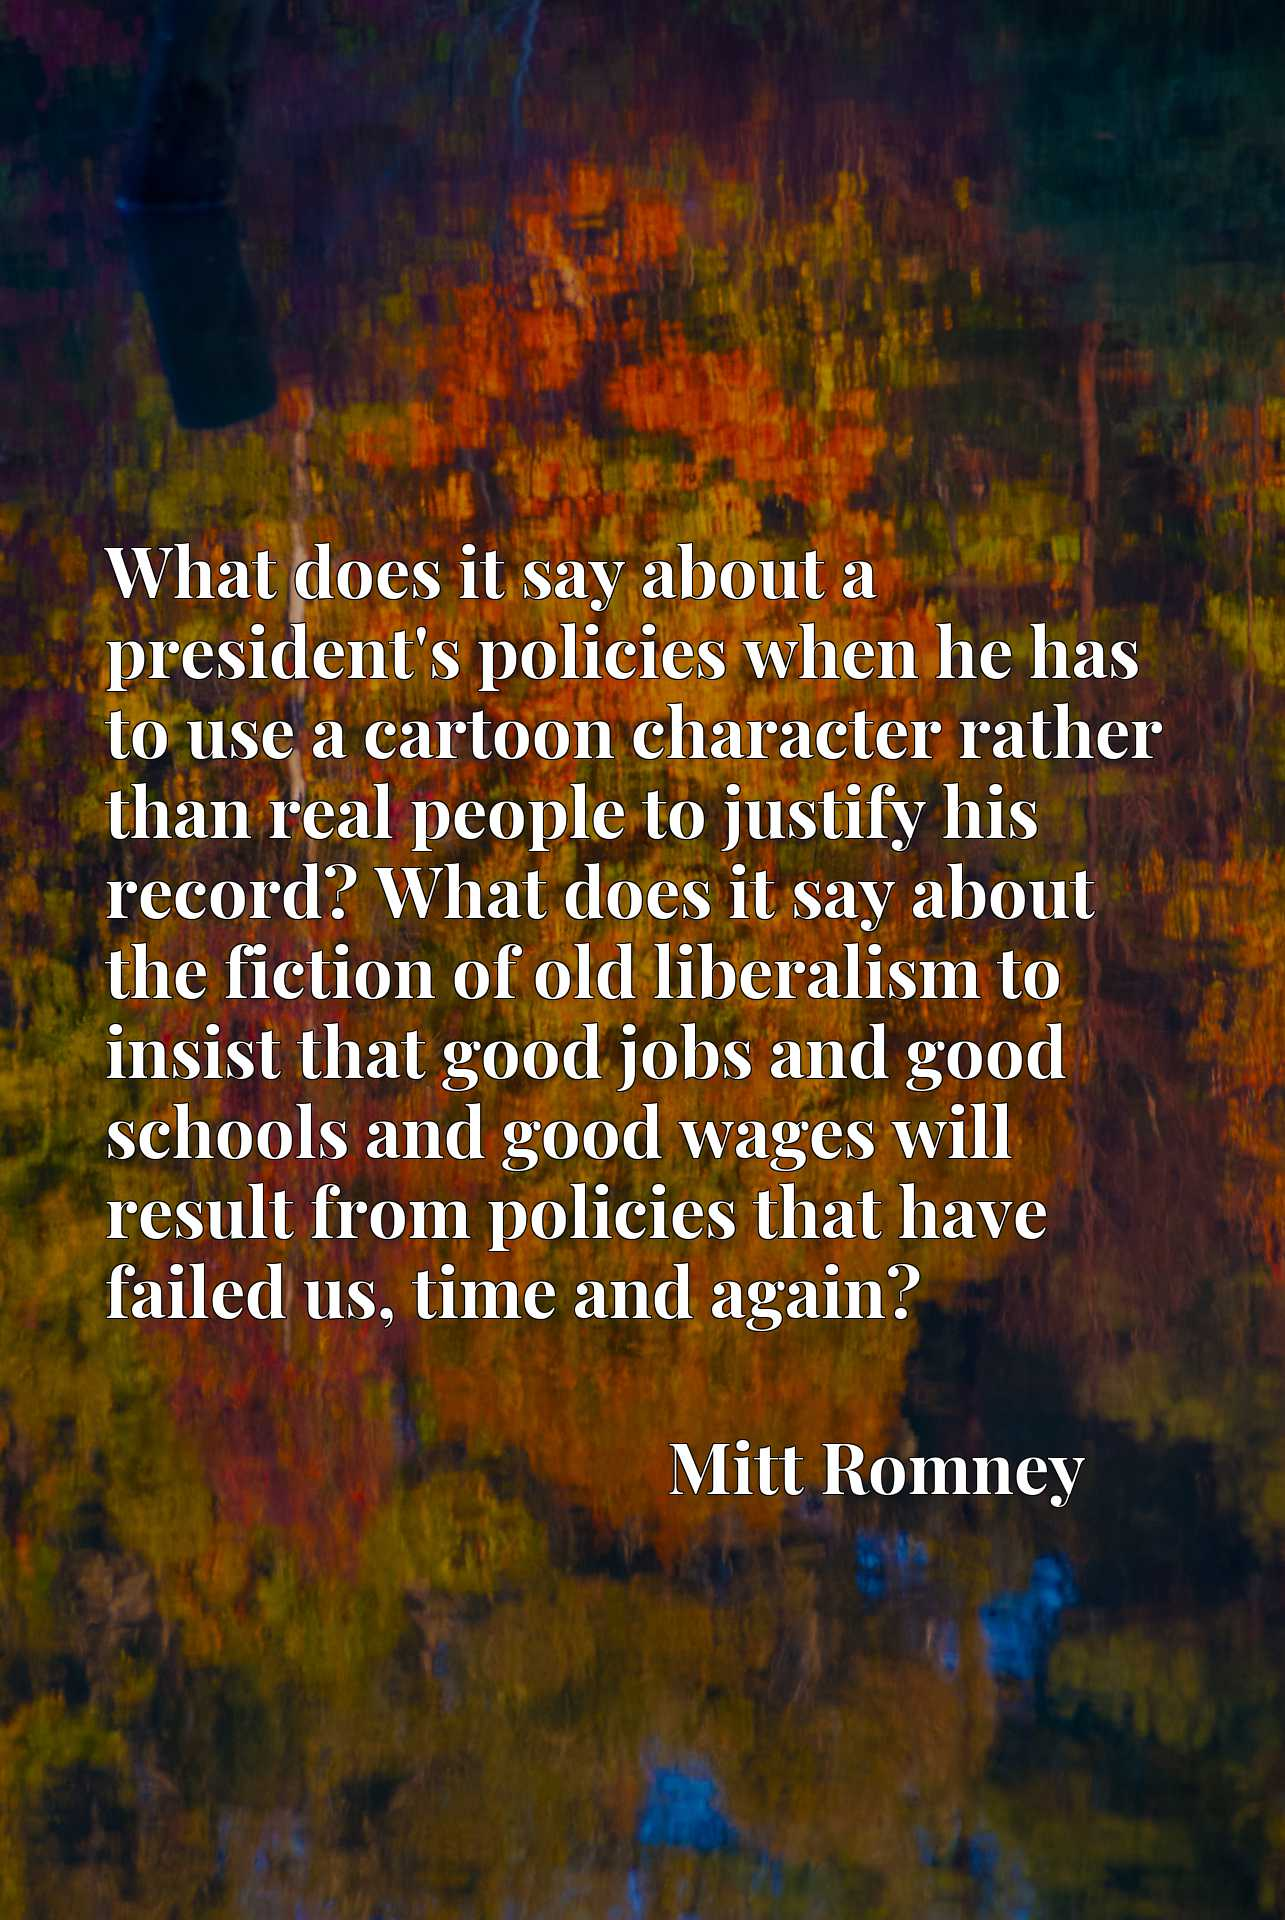 What does it say about a president's policies when he has to use a cartoon character rather than real people to justify his record? What does it say about the fiction of old liberalism to insist that good jobs and good schools and good wages will result from policies that have failed us, time and again?